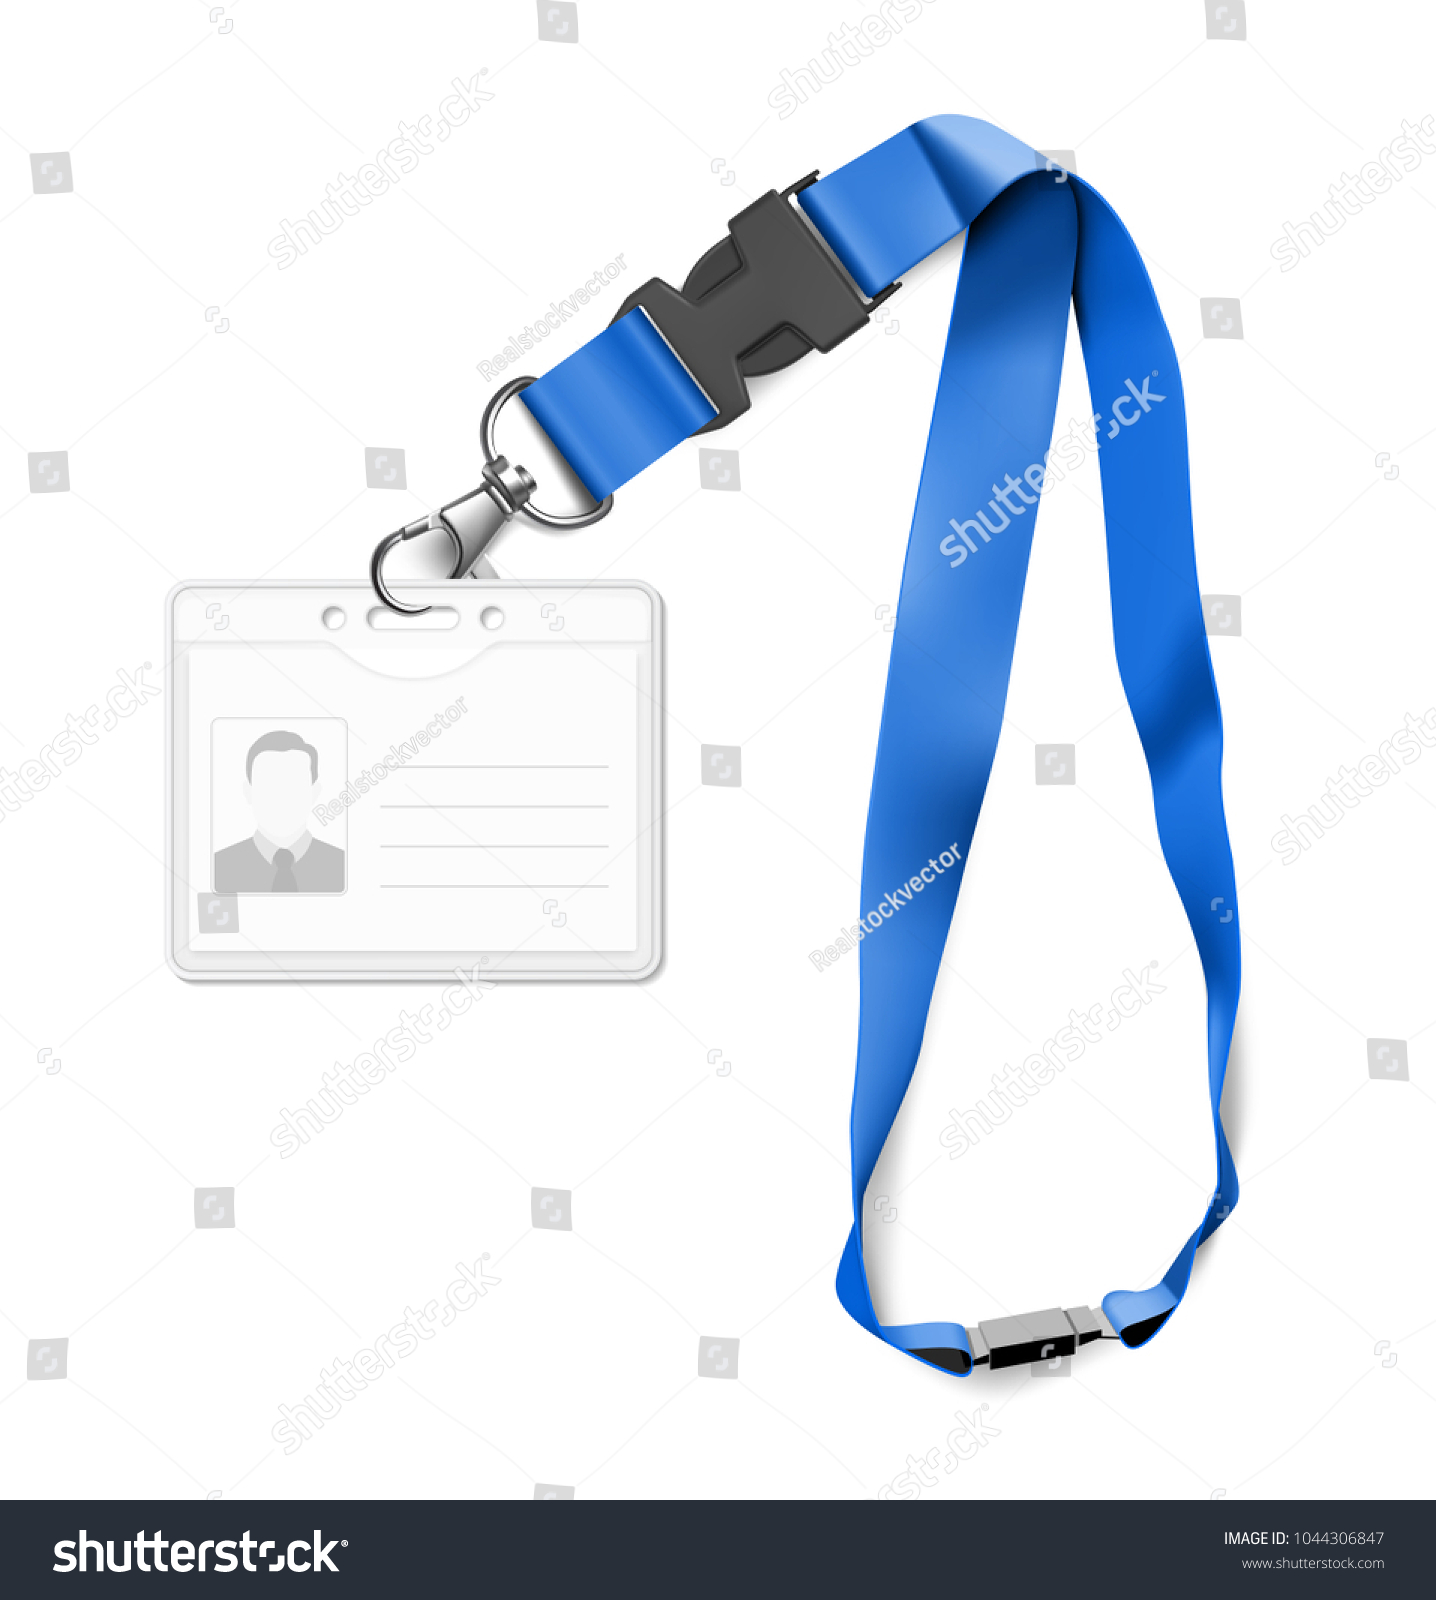 Set Lanyard Id Card Vector Illustration Stock Vector HD Royalty - Free lanyard template